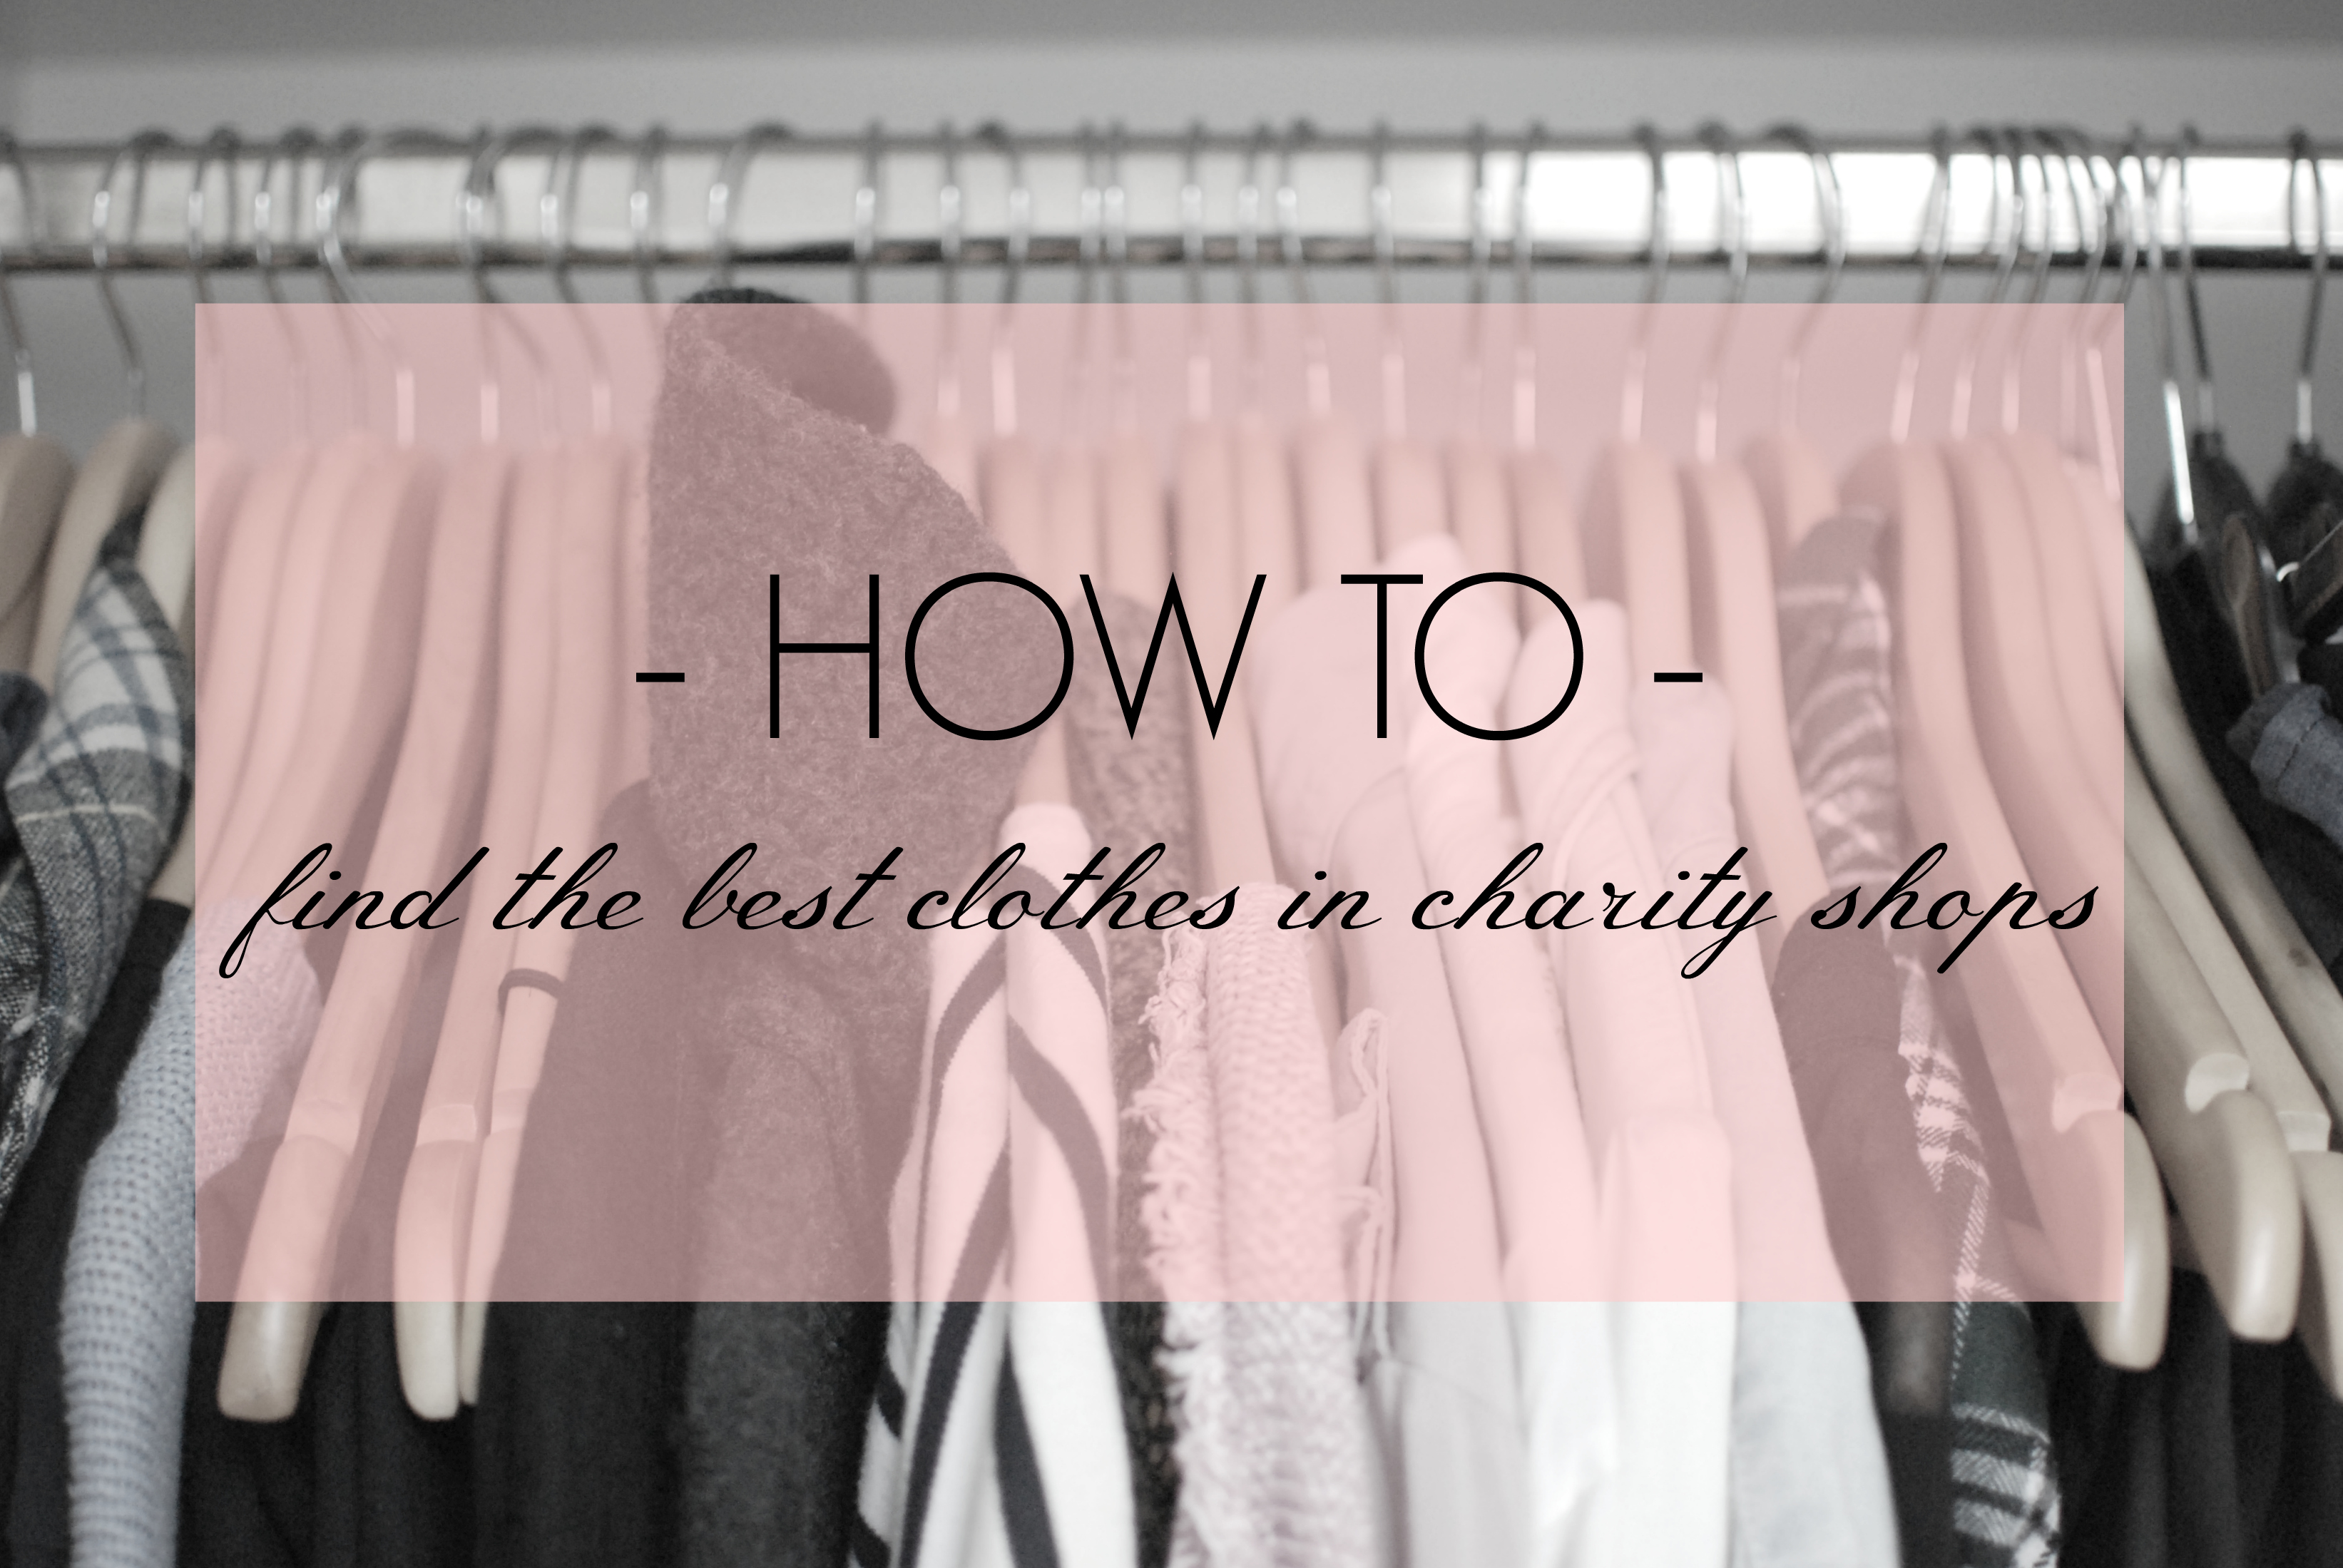 5 tips for charity shopping thrift shopping op shopping